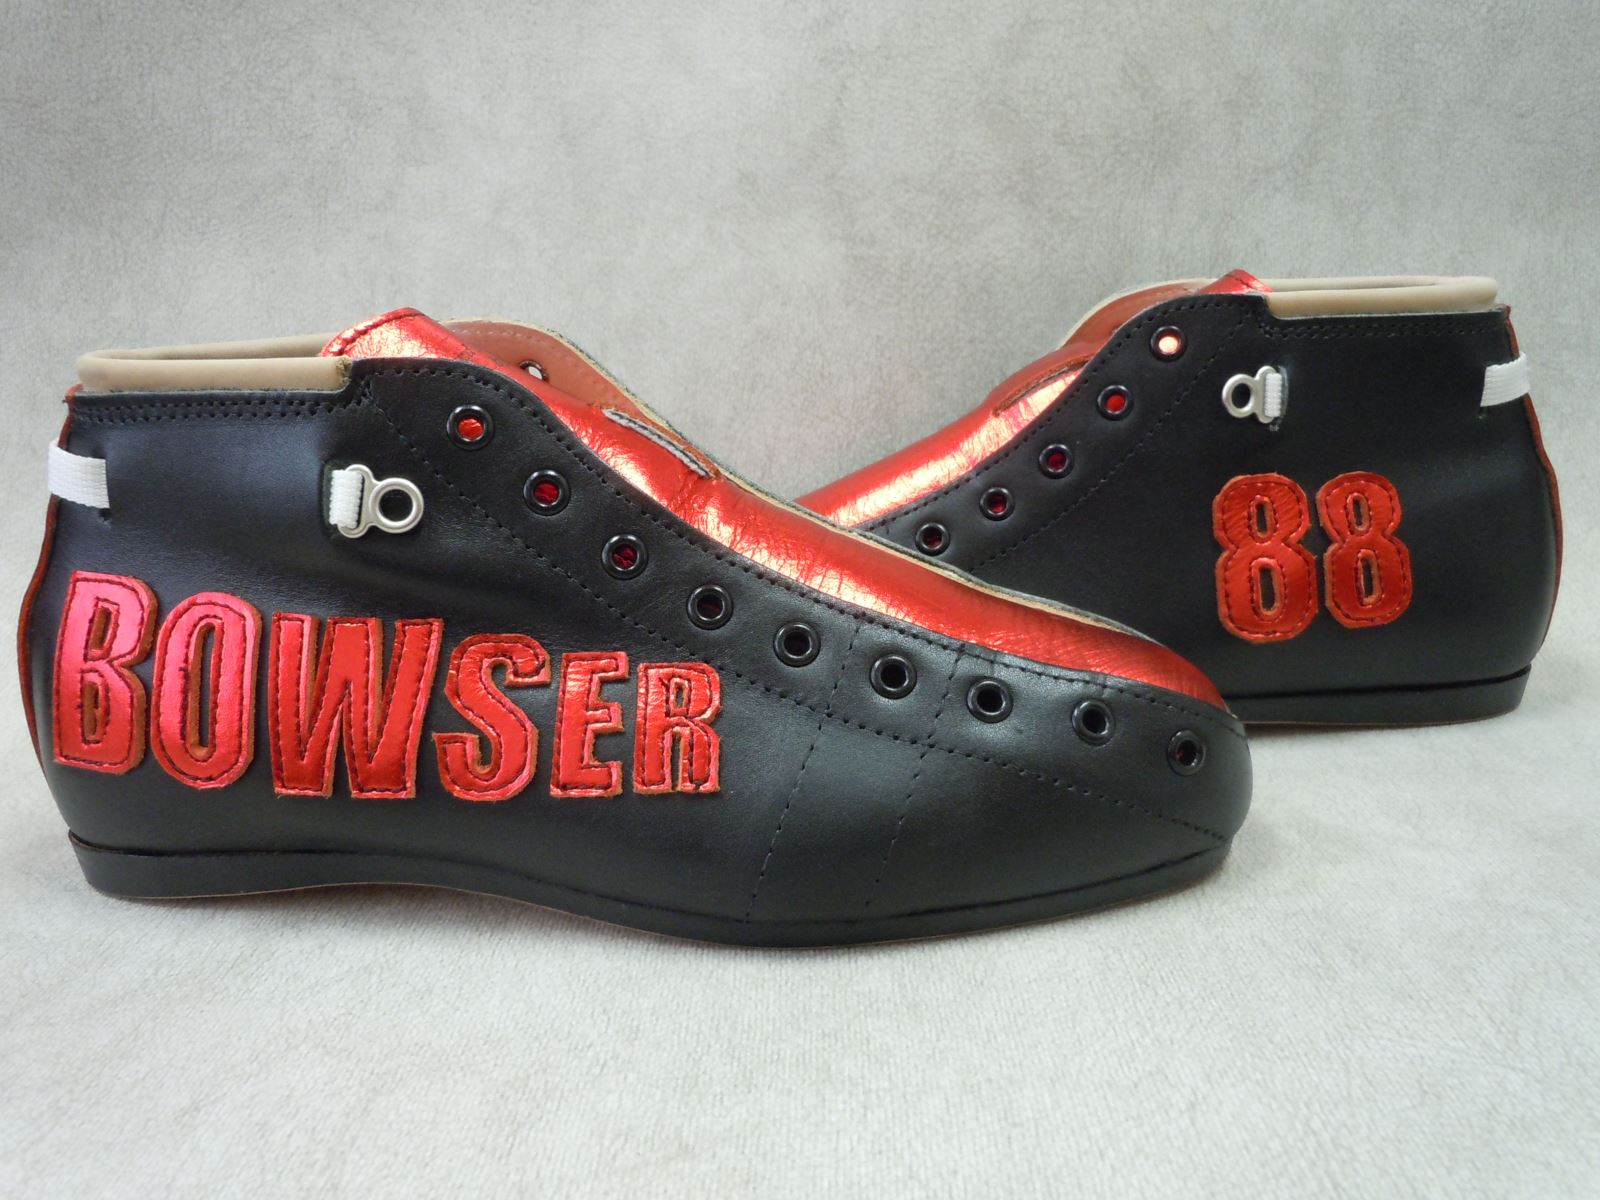 Riedell Custom Model 495 Boot with Bowser 88 Decals